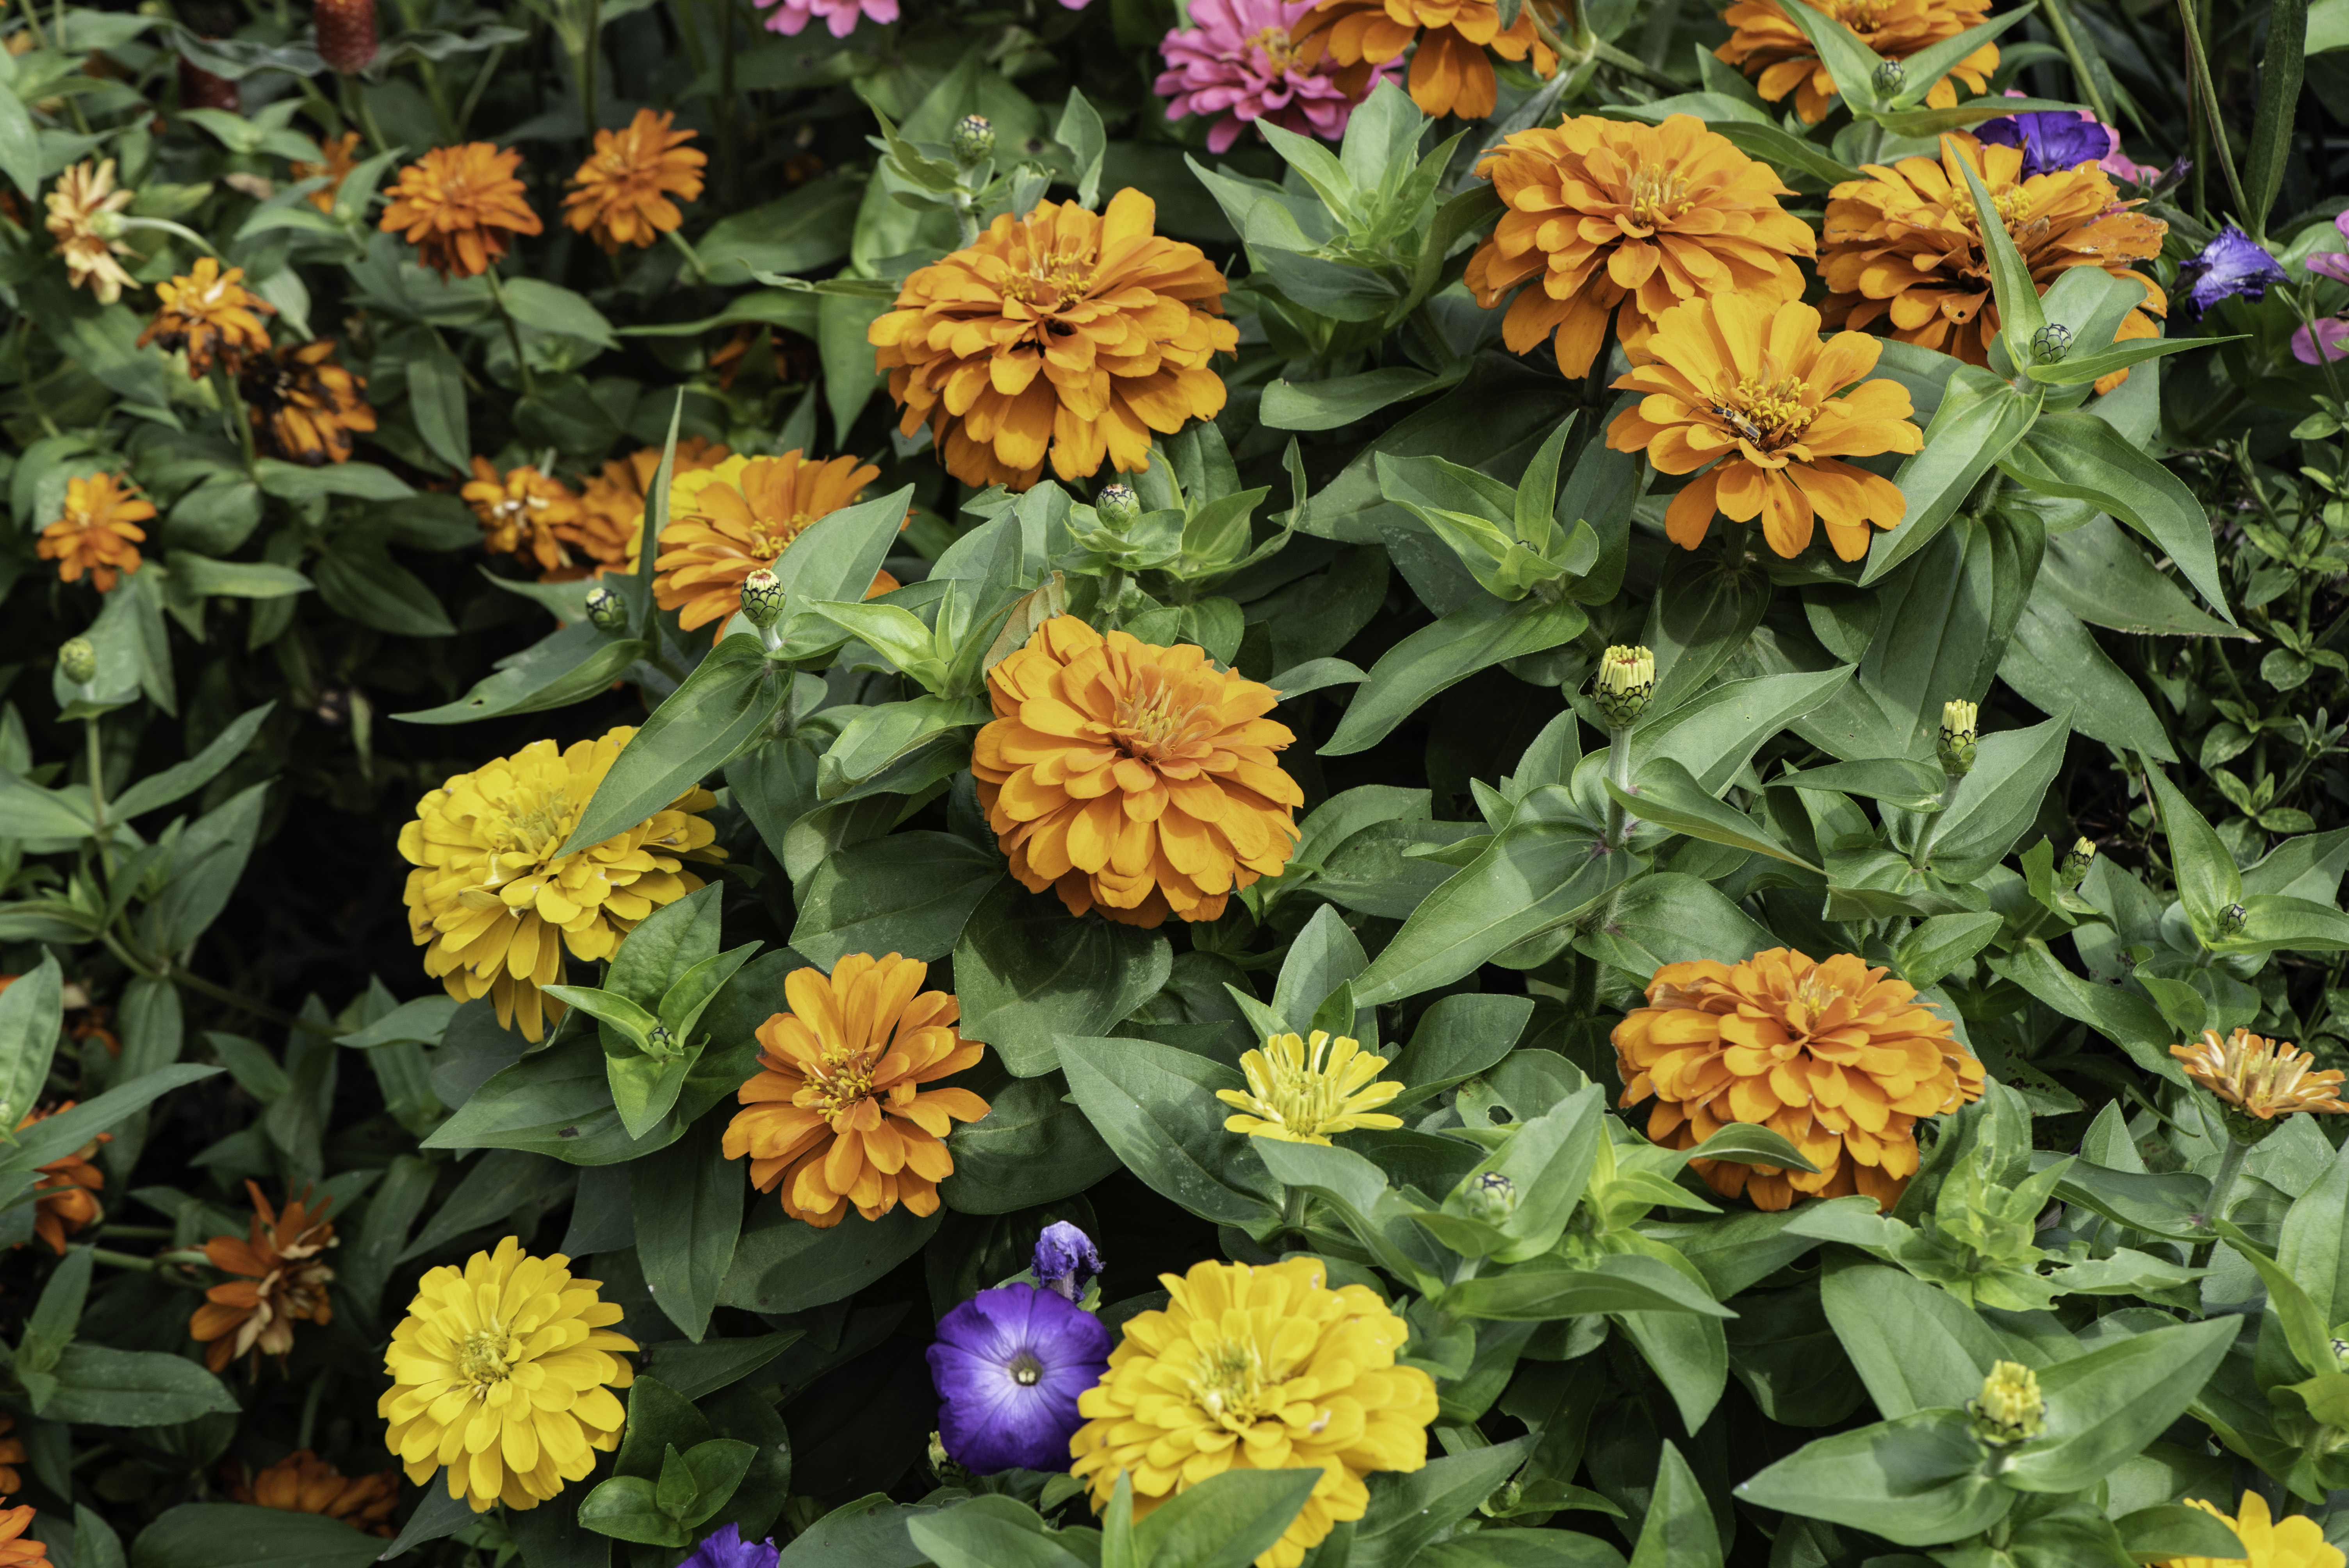 Yellow And Orange Flowers In The Garden Image Free Stock Photo